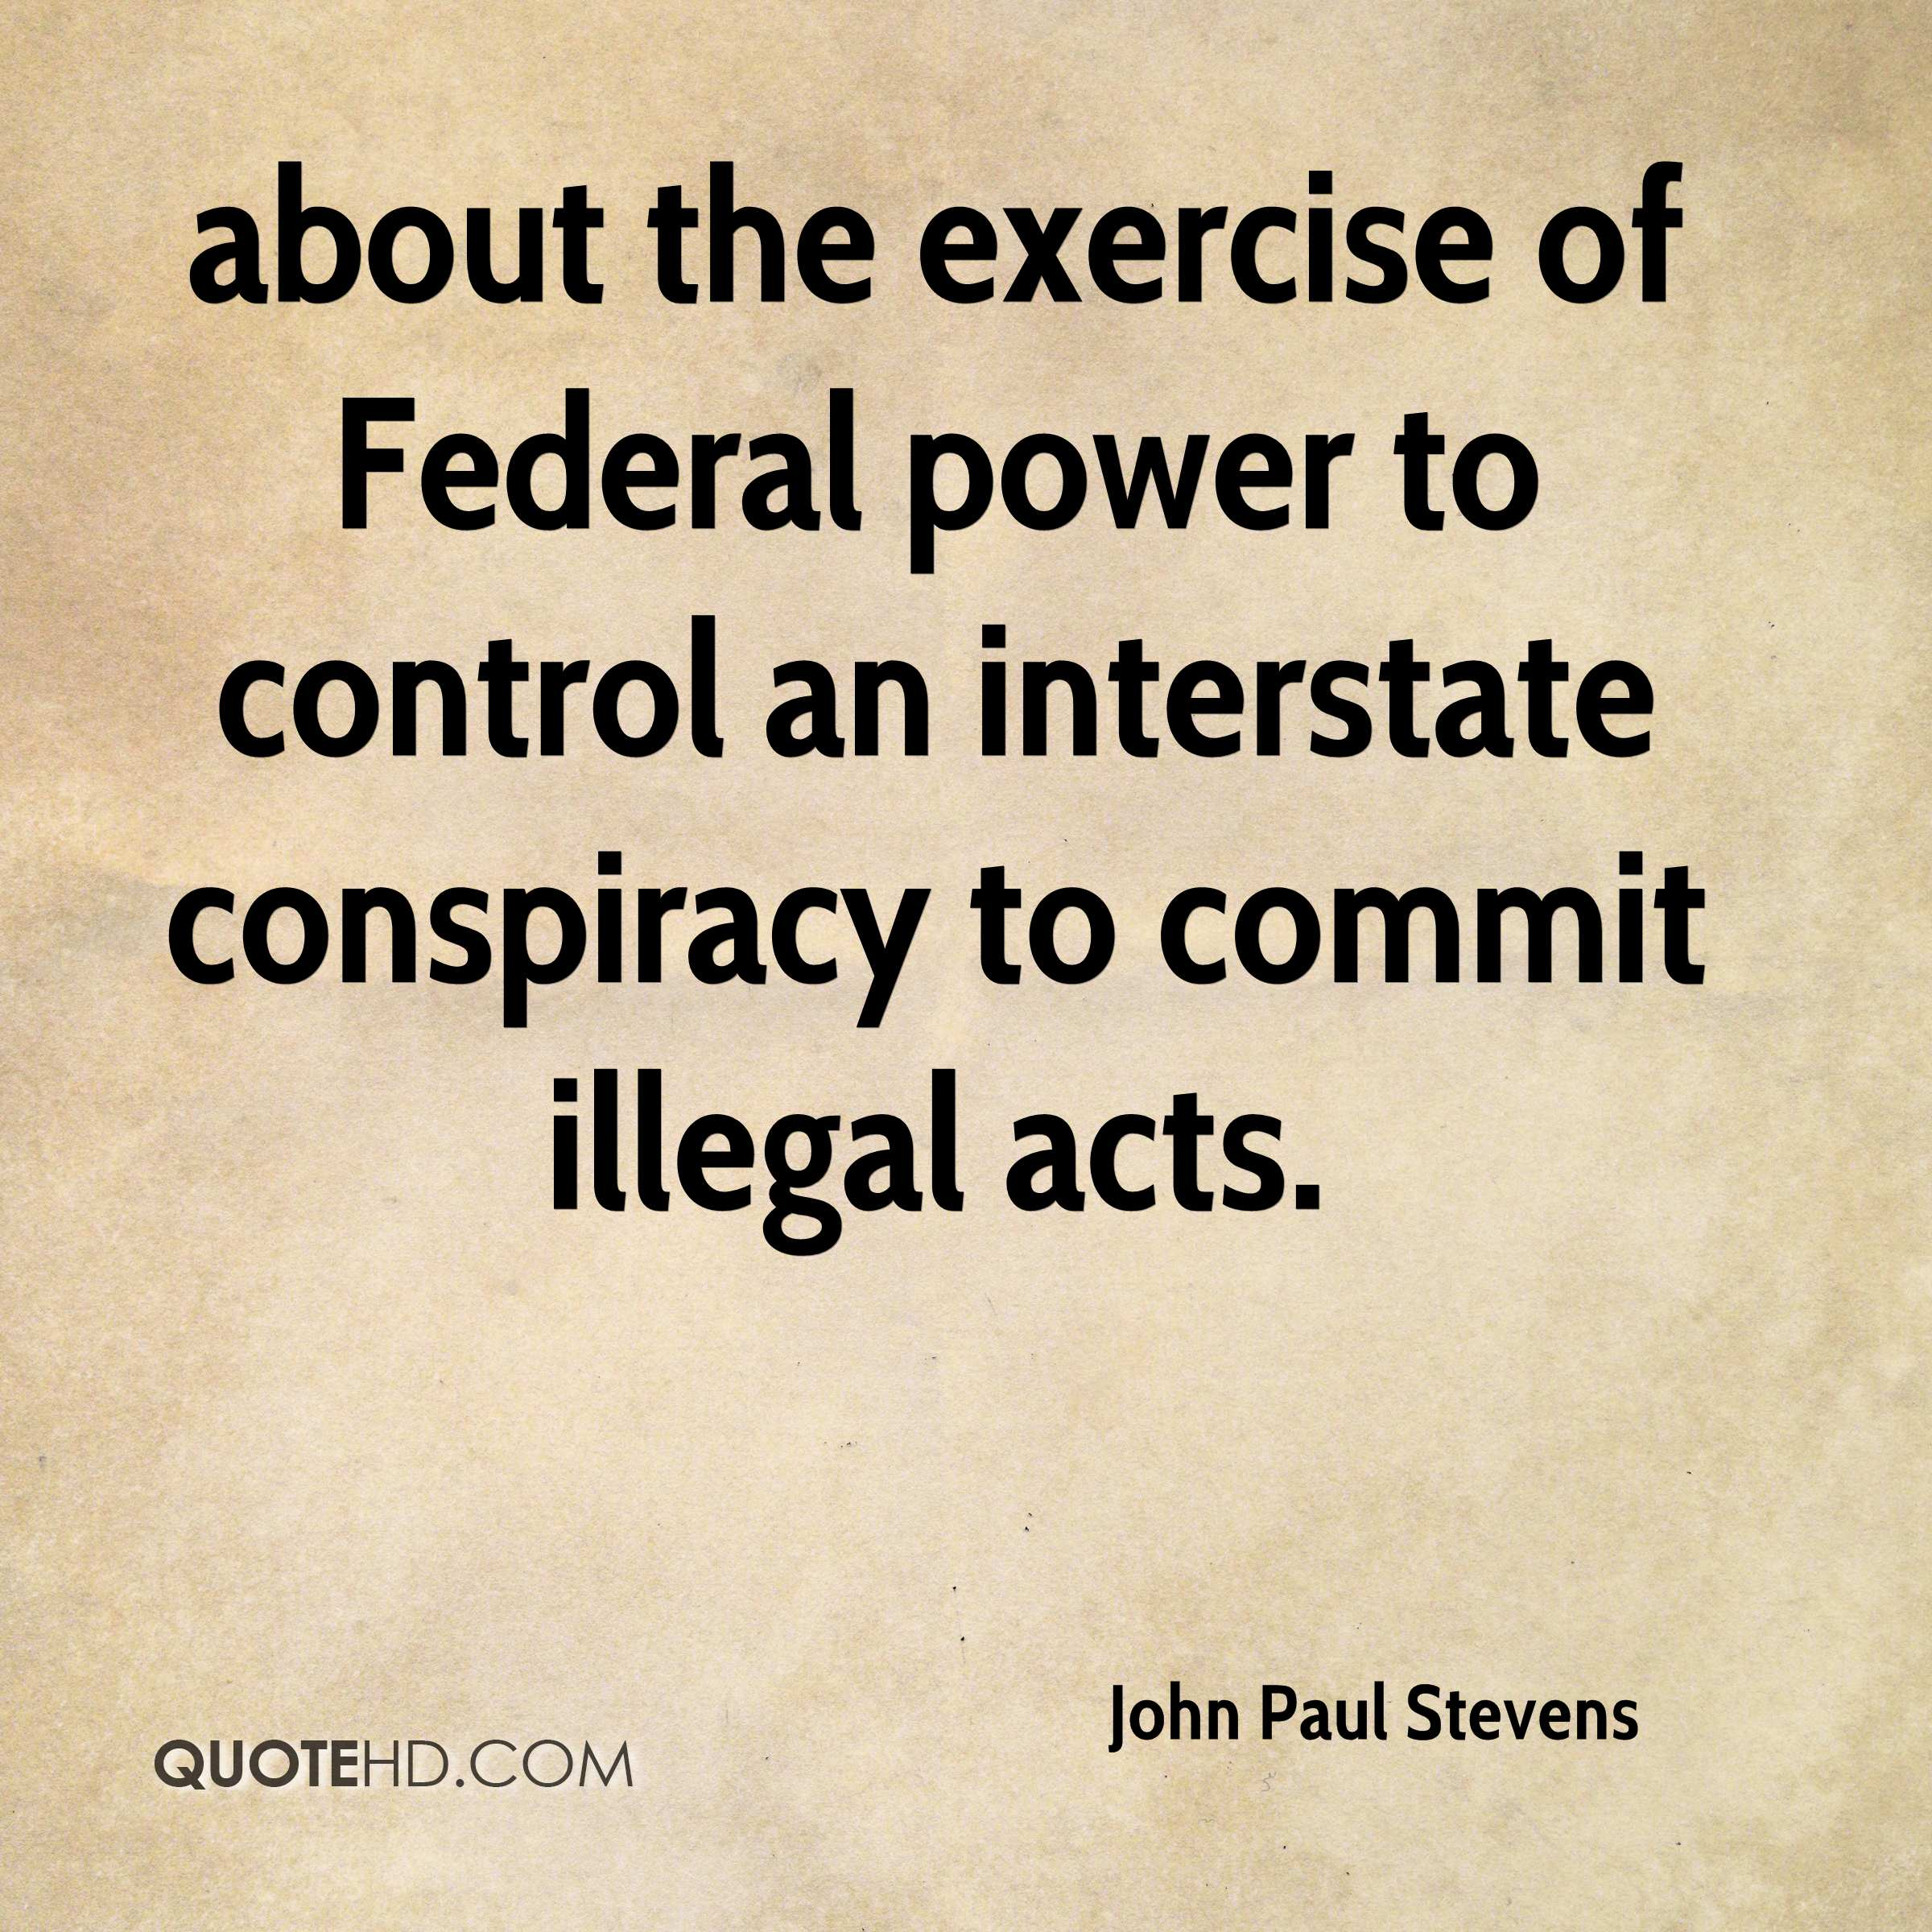 about the exercise of Federal power to control an interstate conspiracy to commit illegal acts.